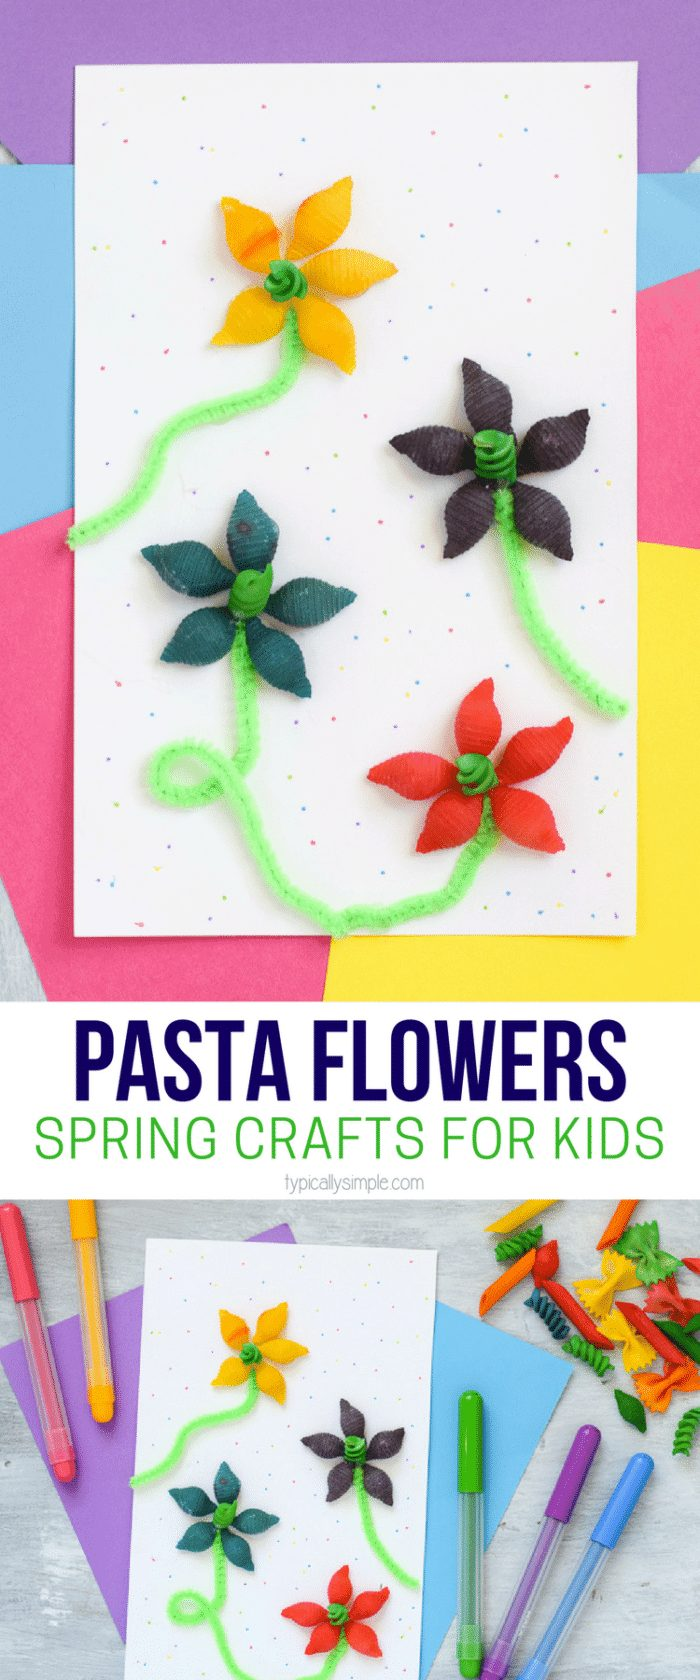 Spring Crafts for Kids using colorful pasta to make flowers with green pipe cleaners and a picture of all the supplies needed below it.